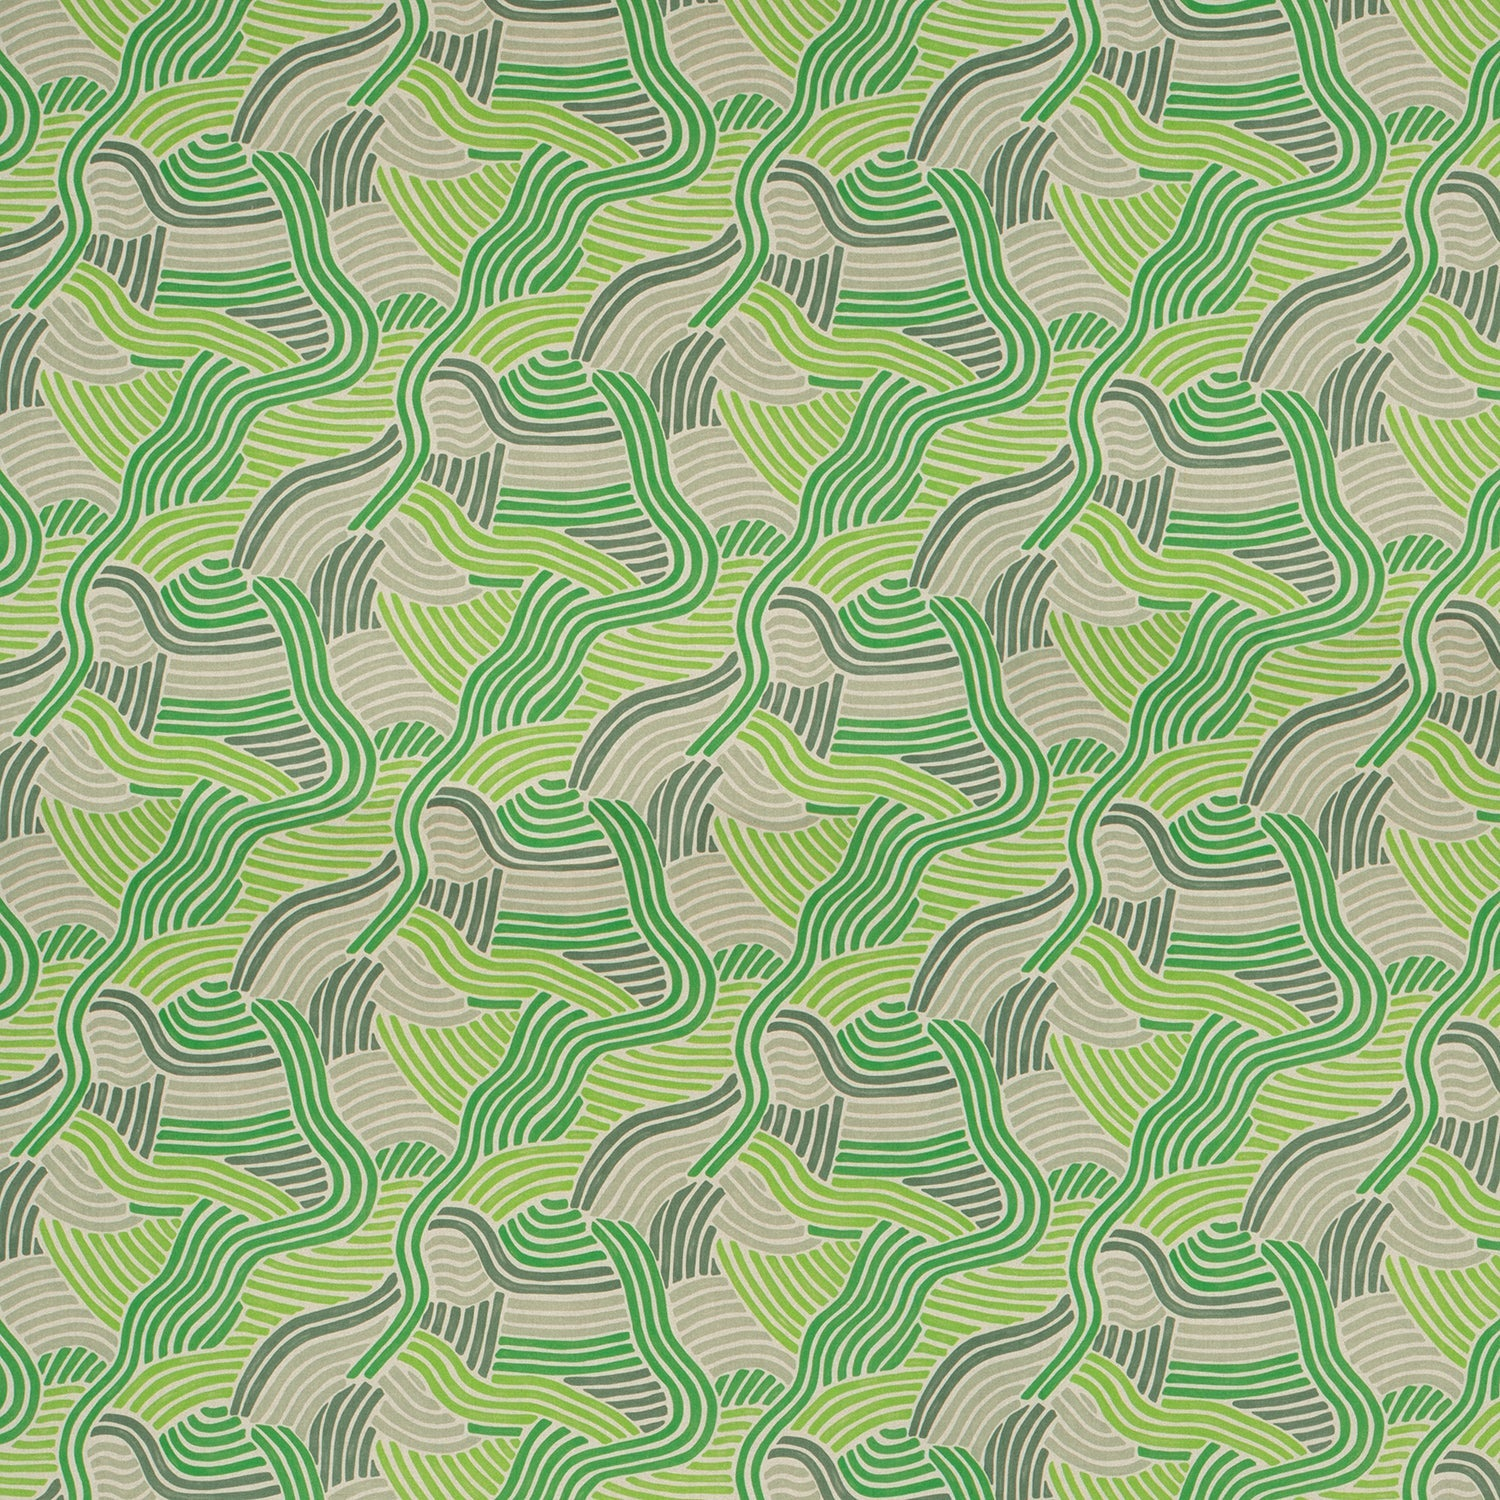 Fabric for curtains and upholstery with a modern green wavy design